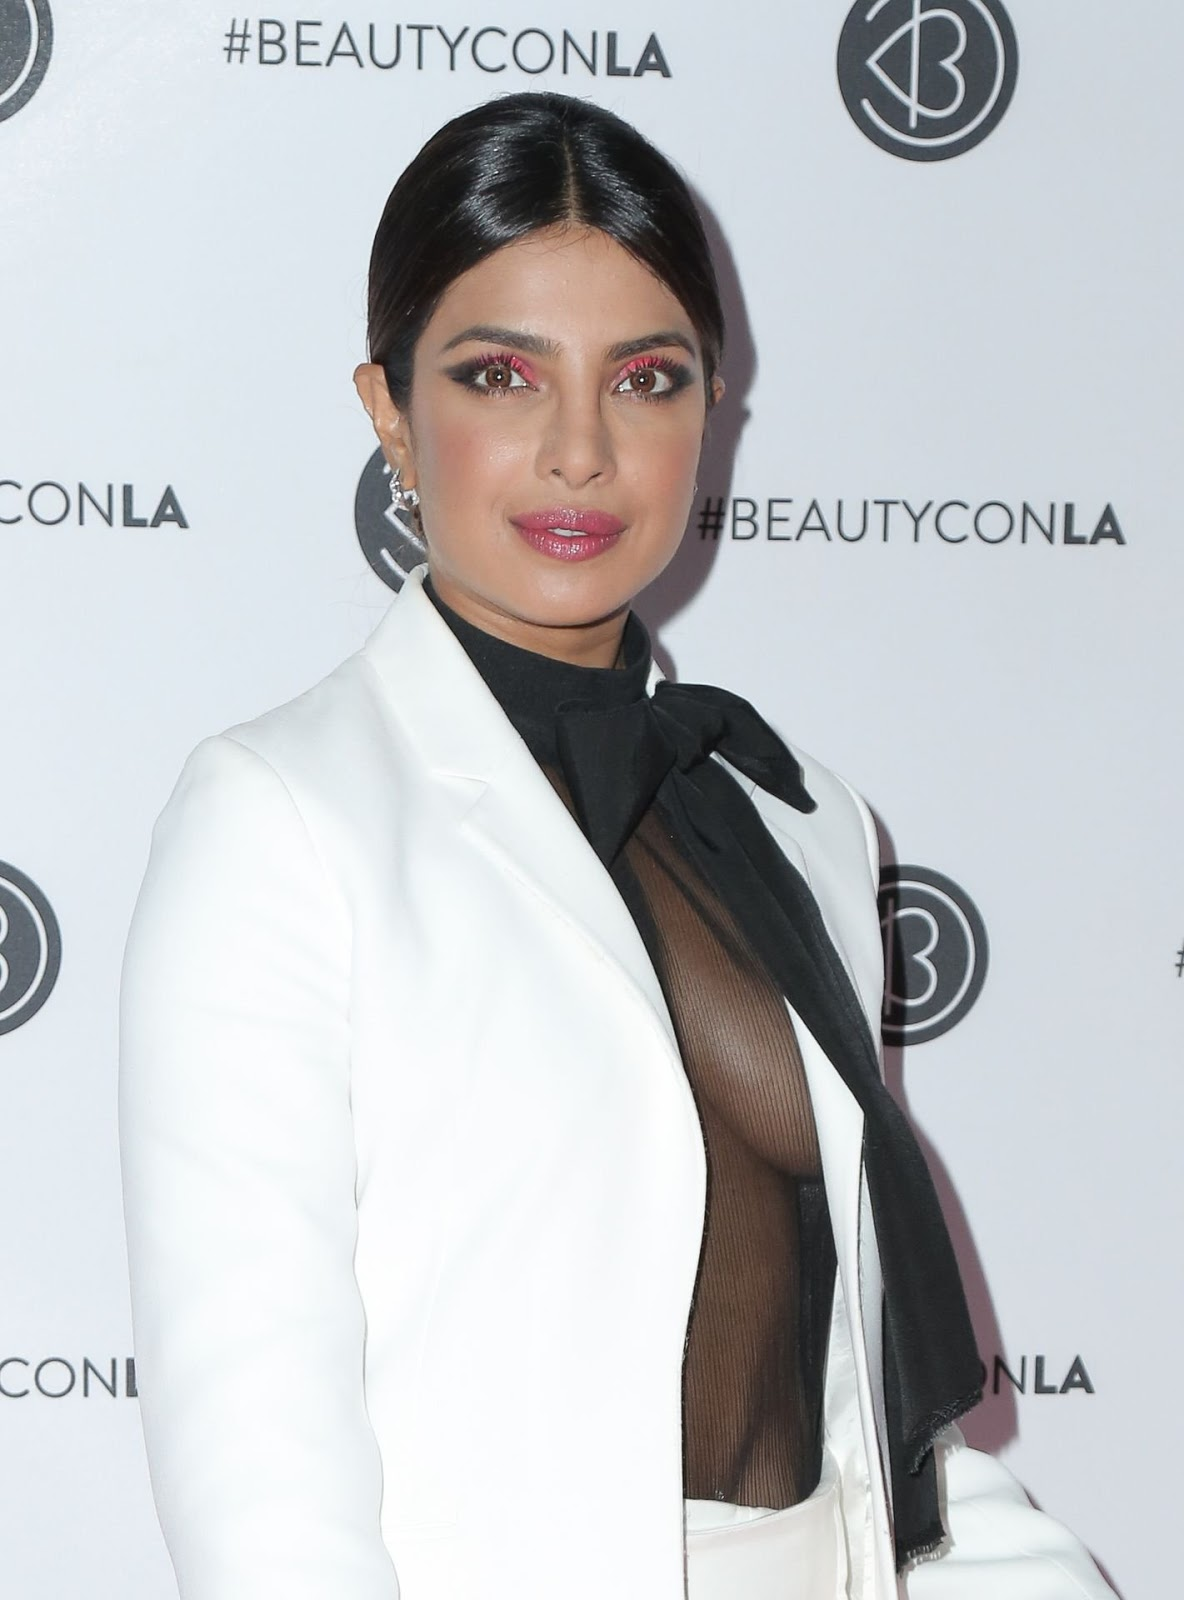 Priyanka Chopra Jonas goes braless in sheer top at Beautycon LA